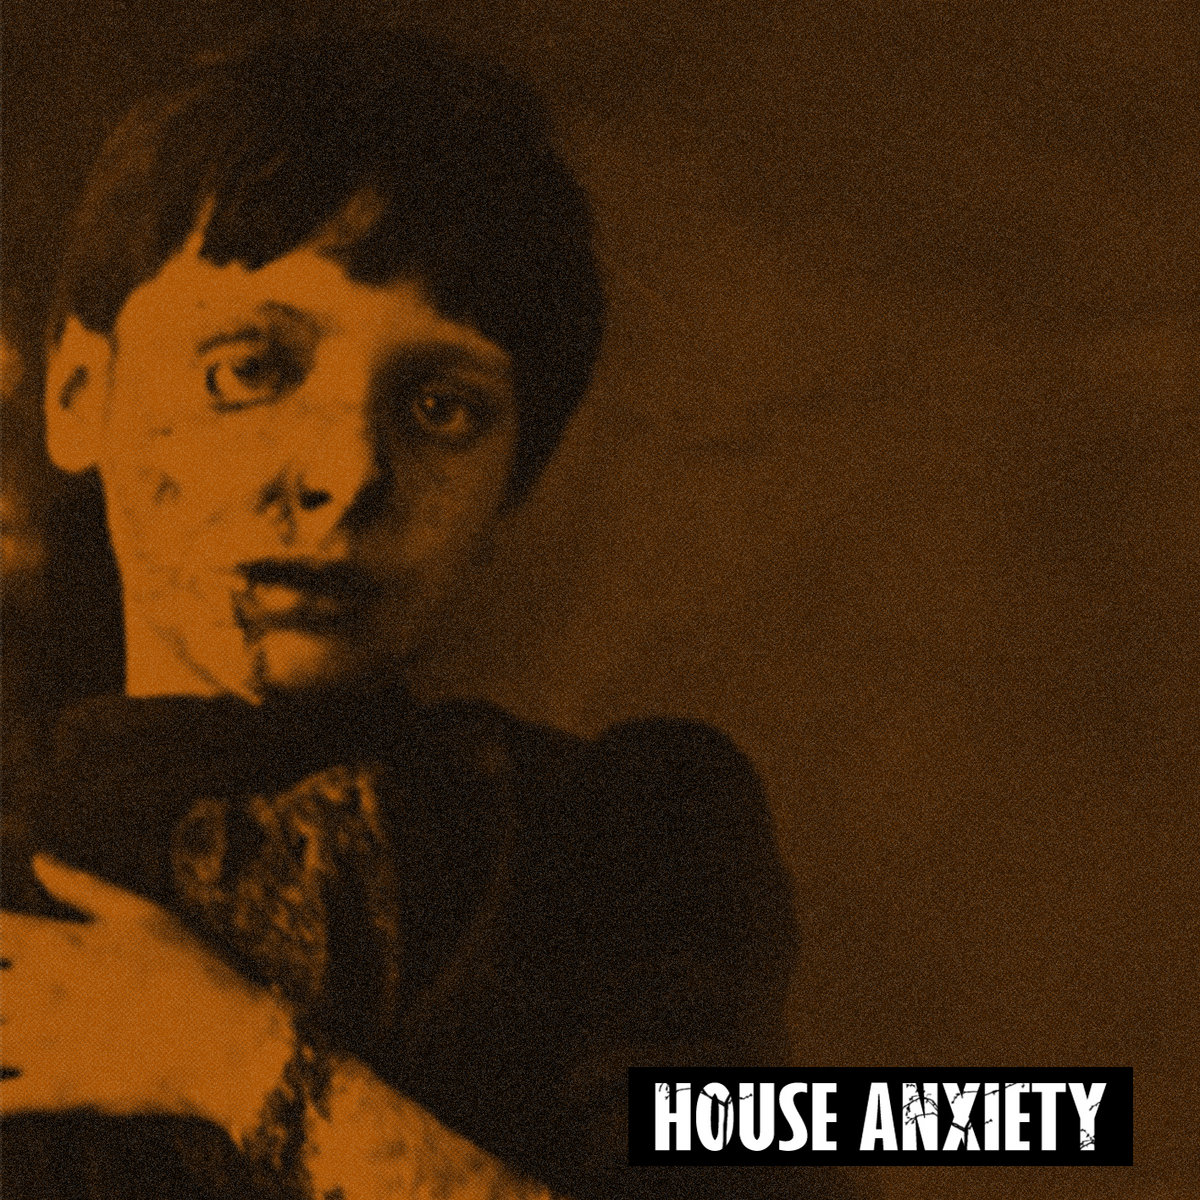 https://houseanxietyband.bandcamp.com/